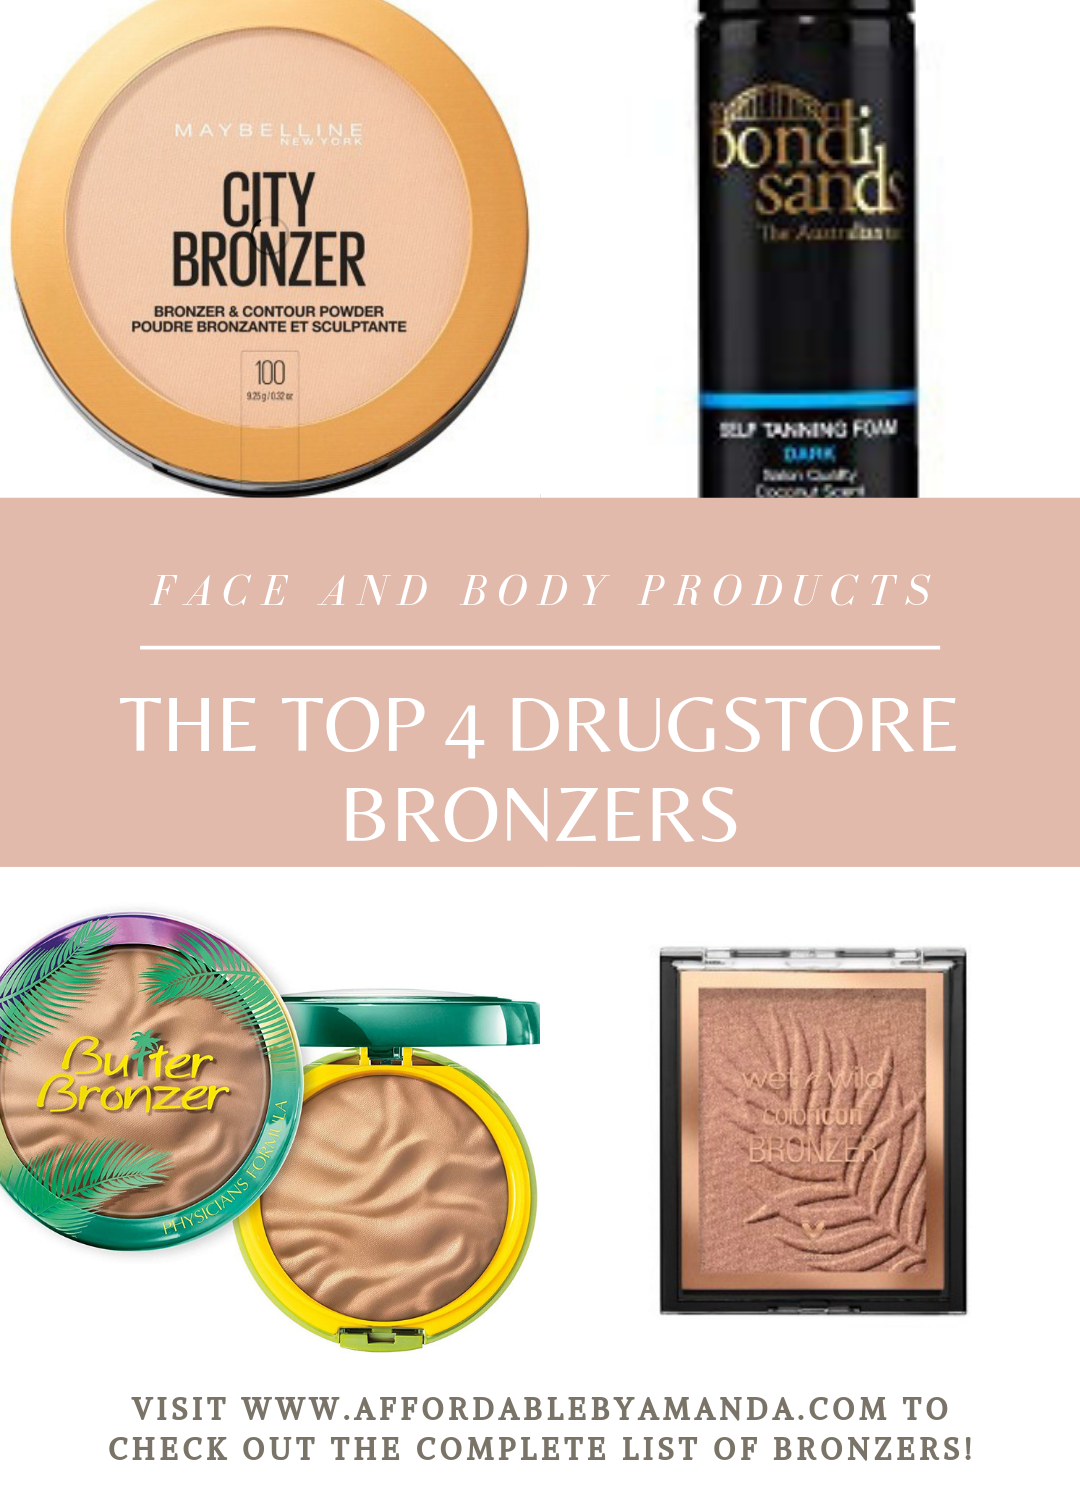 Top 4 Drugstore Face and Body Bronzers For Pale Skin. Affordable by Amanda Tampa Blogger shares her top favorite drugstore bronzers.